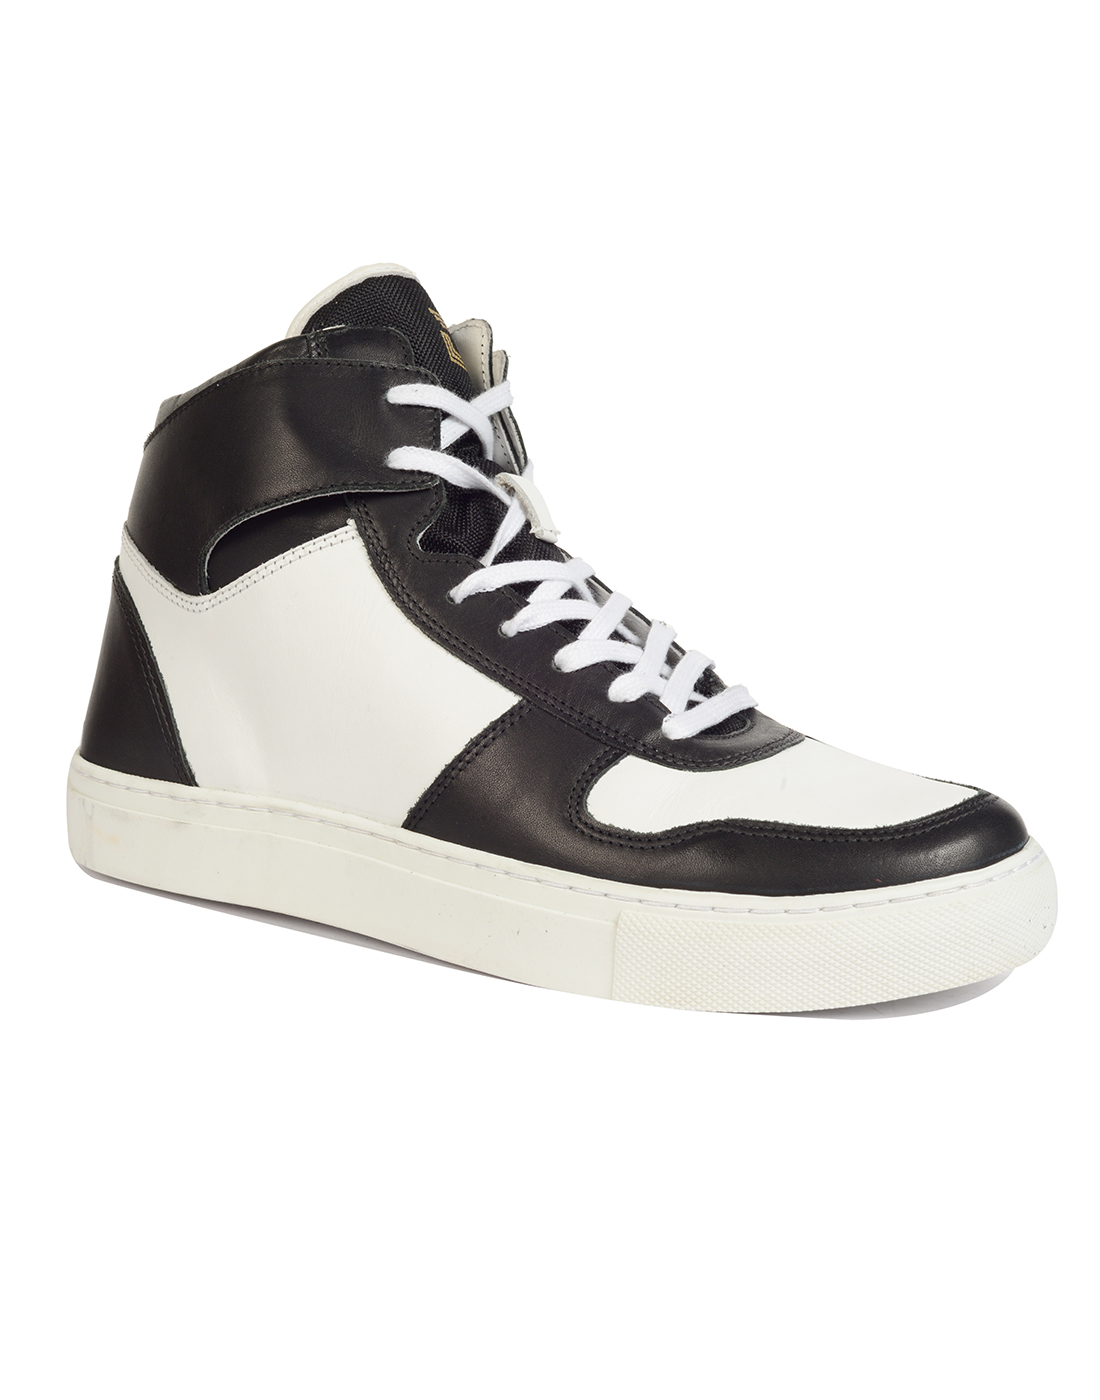 Dcyphr | HIGH-TOP